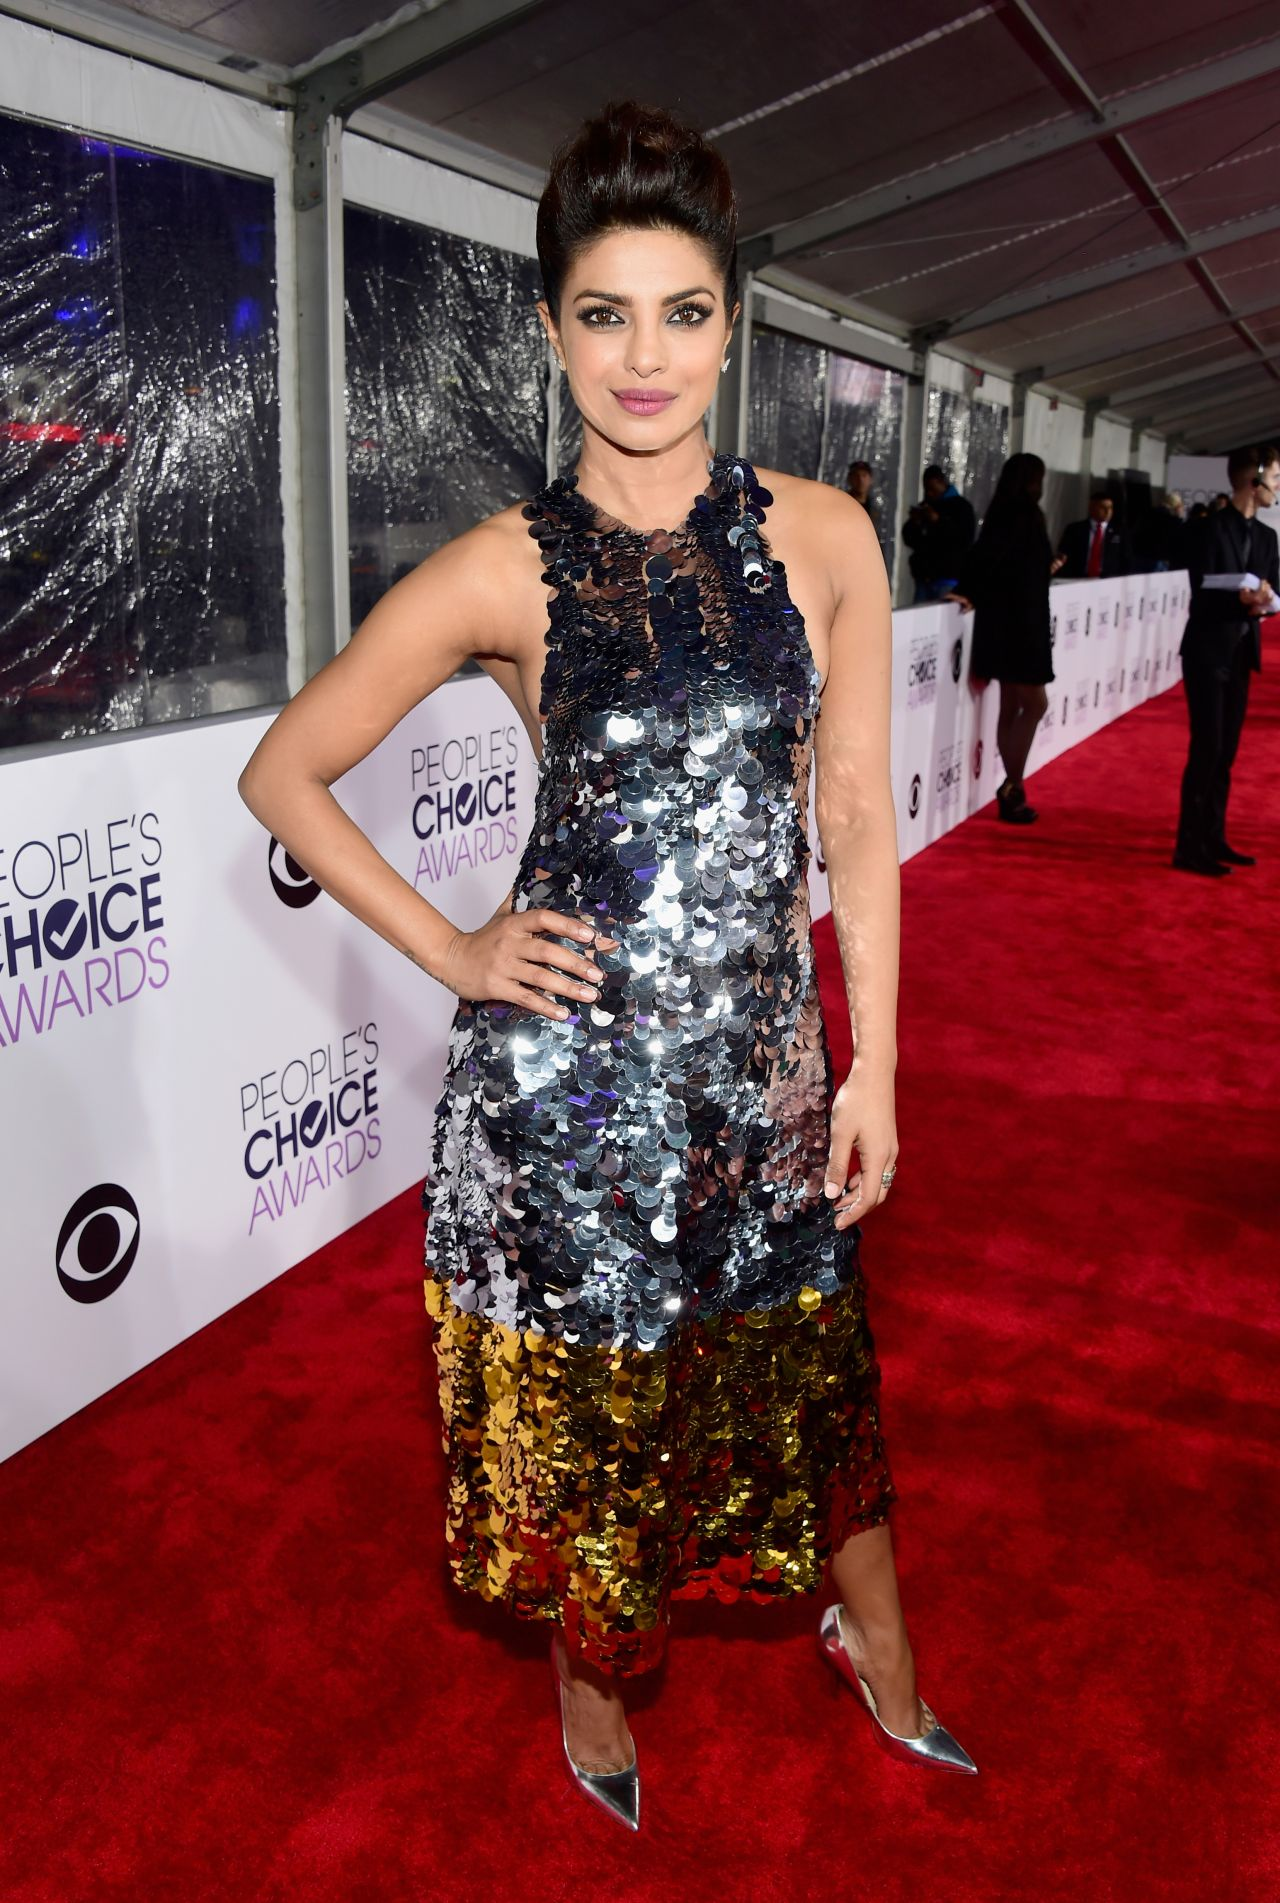 priyanka-chopra-2016-people-s-choice-awards-in-microsoft-theater-in-los-angeles-3